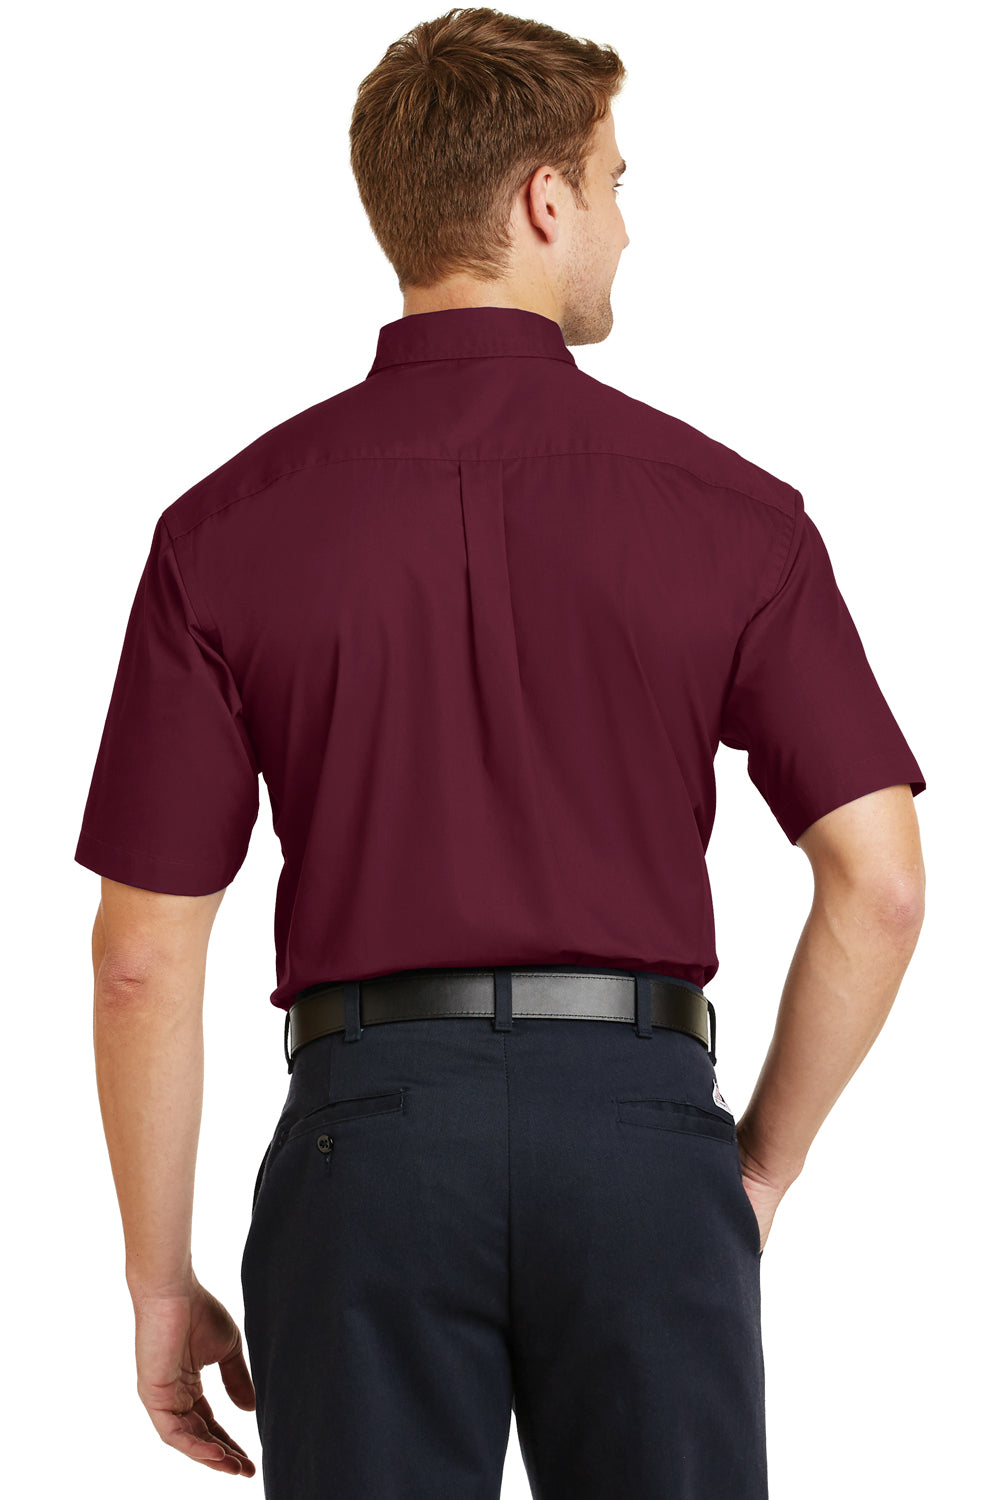 CornerStone SP18 Mens SuperPro Stain Resistant Short Sleeve Button Down Shirt w/ Pocket Burgundy Back